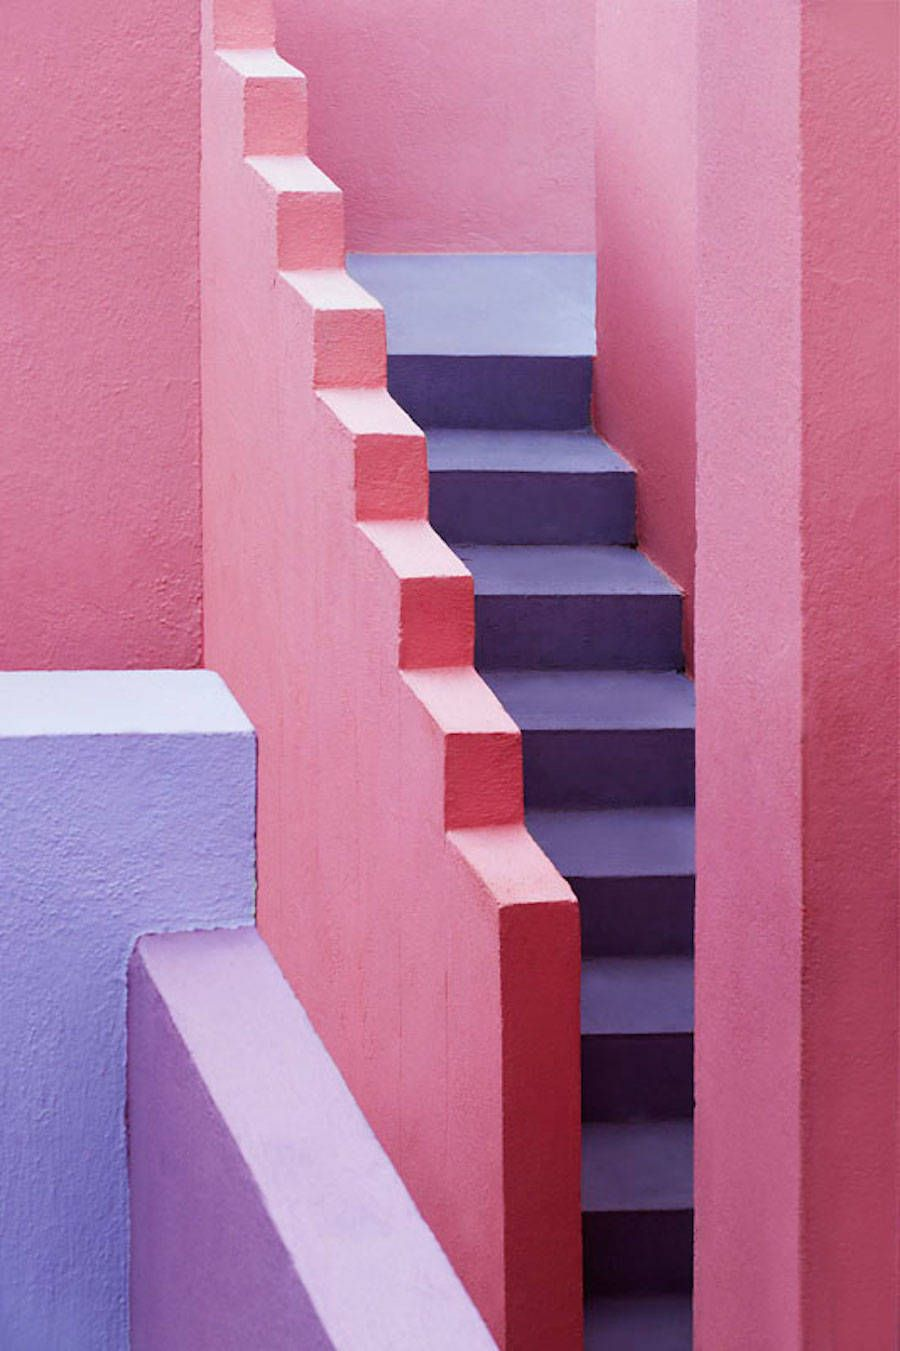 Architecture Photography Series multicolored architectural photography in spain | architectural